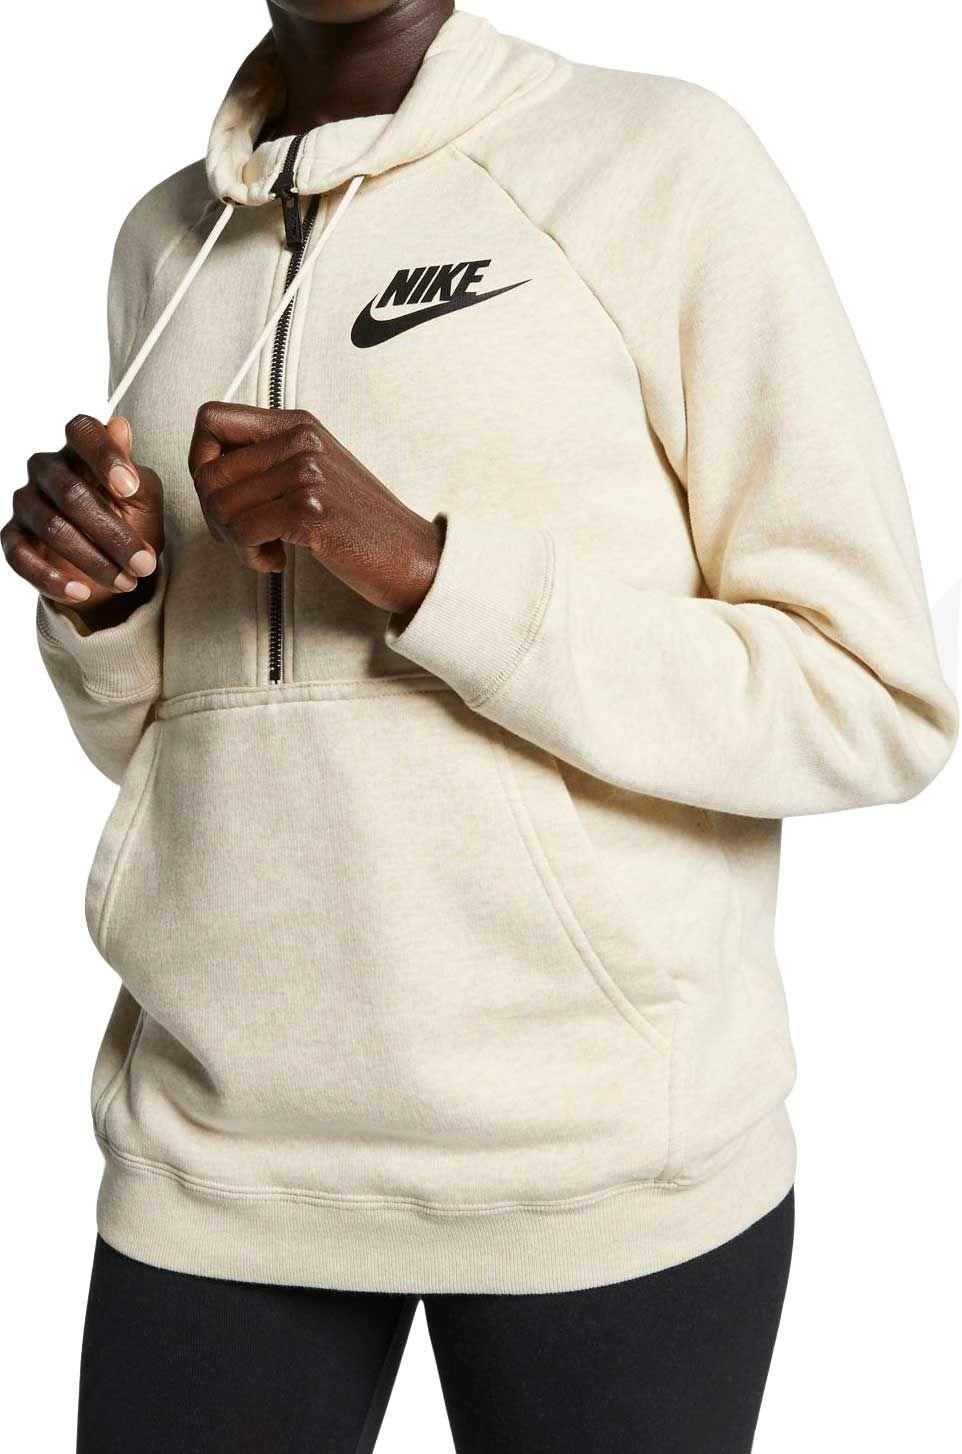 6e196862b31d Lyst - Nike Sportswear Rally Half-zip Sweatshirt in Natural